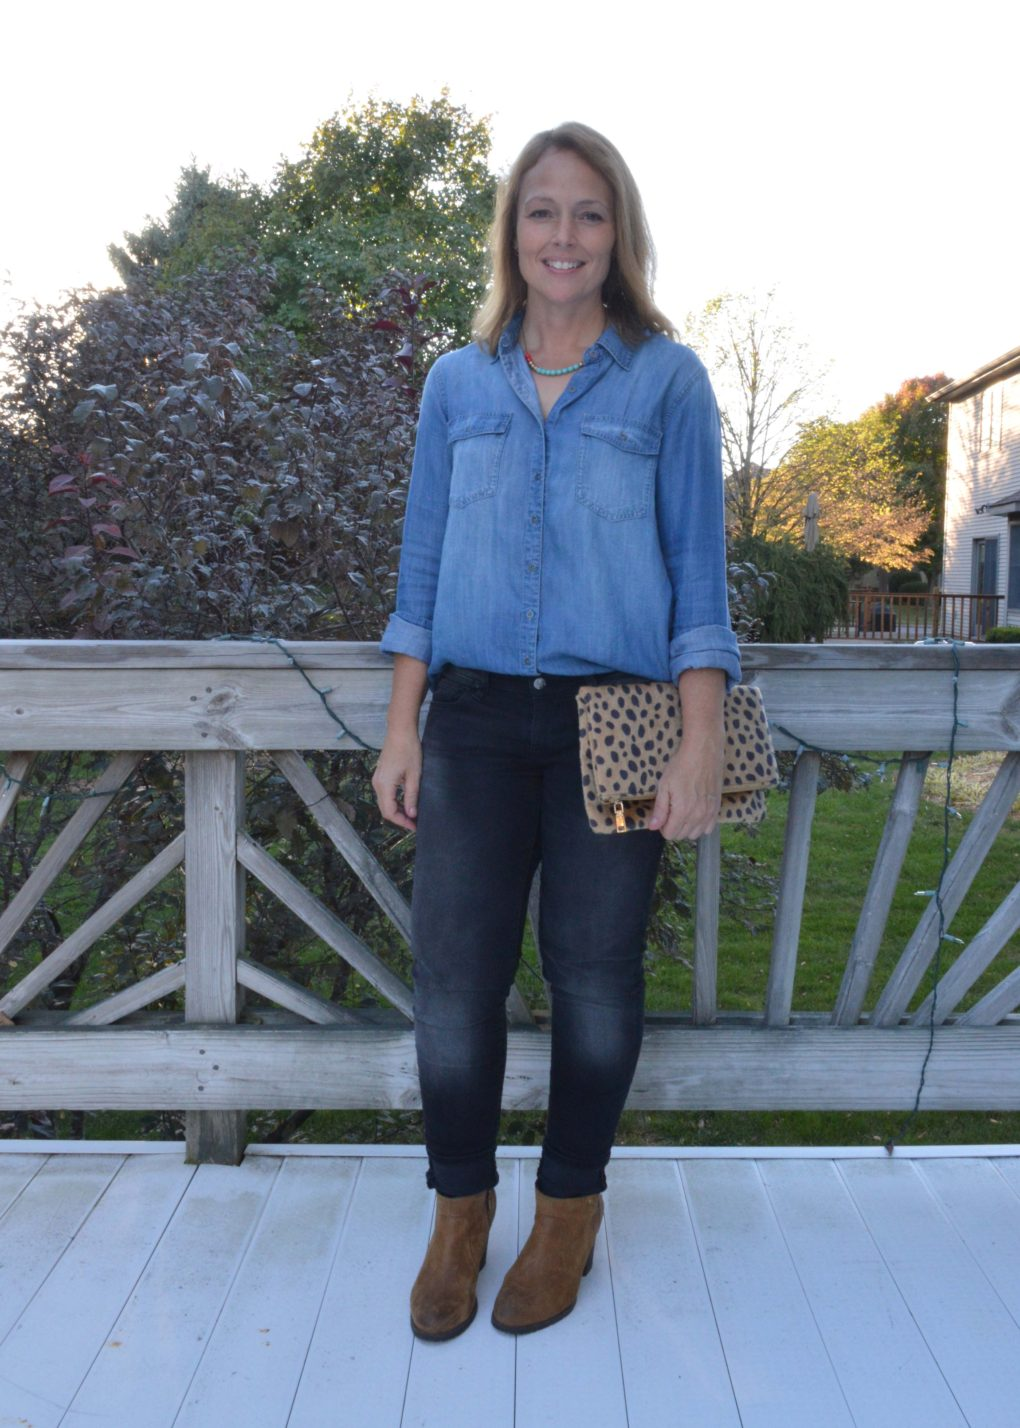 Chambray shirt with black jeans and a pop of leopard